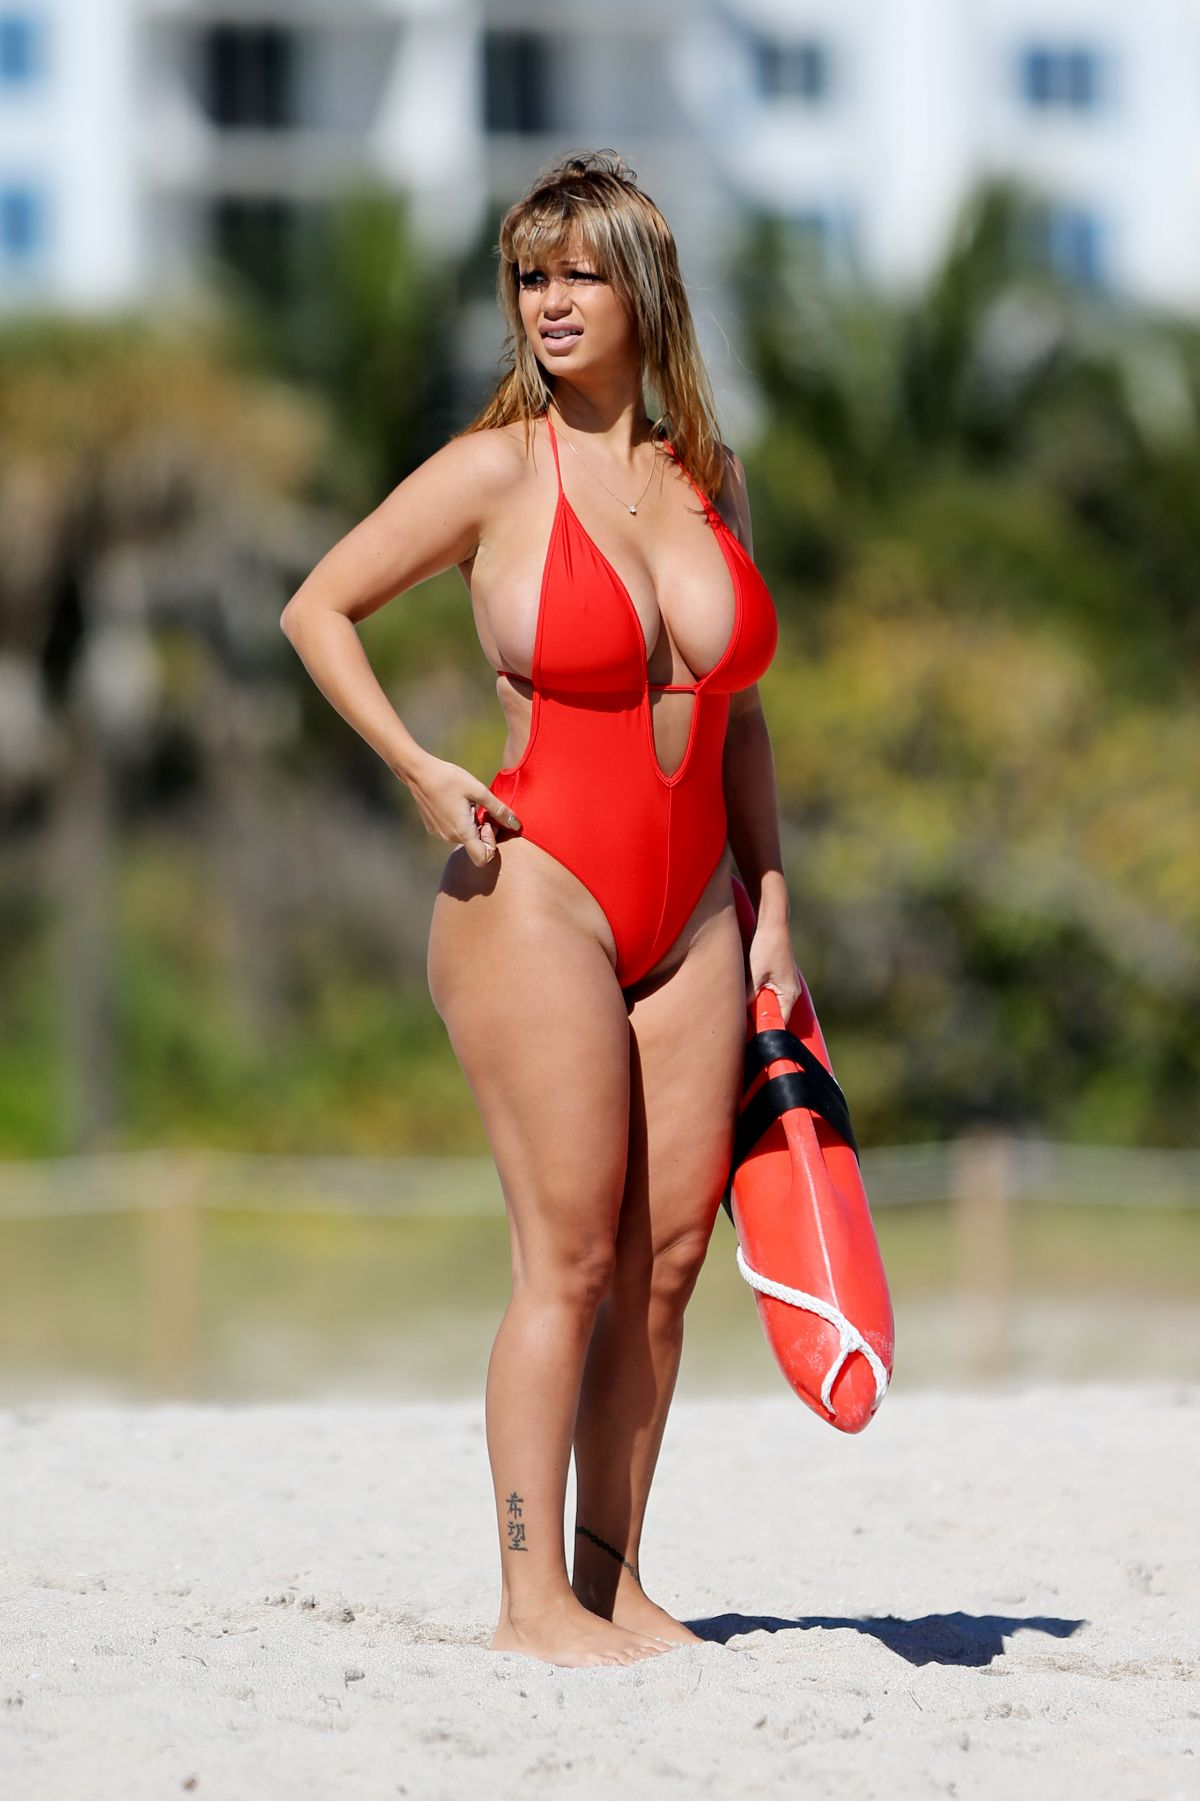 ddb65fe8d5 JOLENA FORDE in Baywatch Swimsuit at a Beach in Miami – HawtCelebs